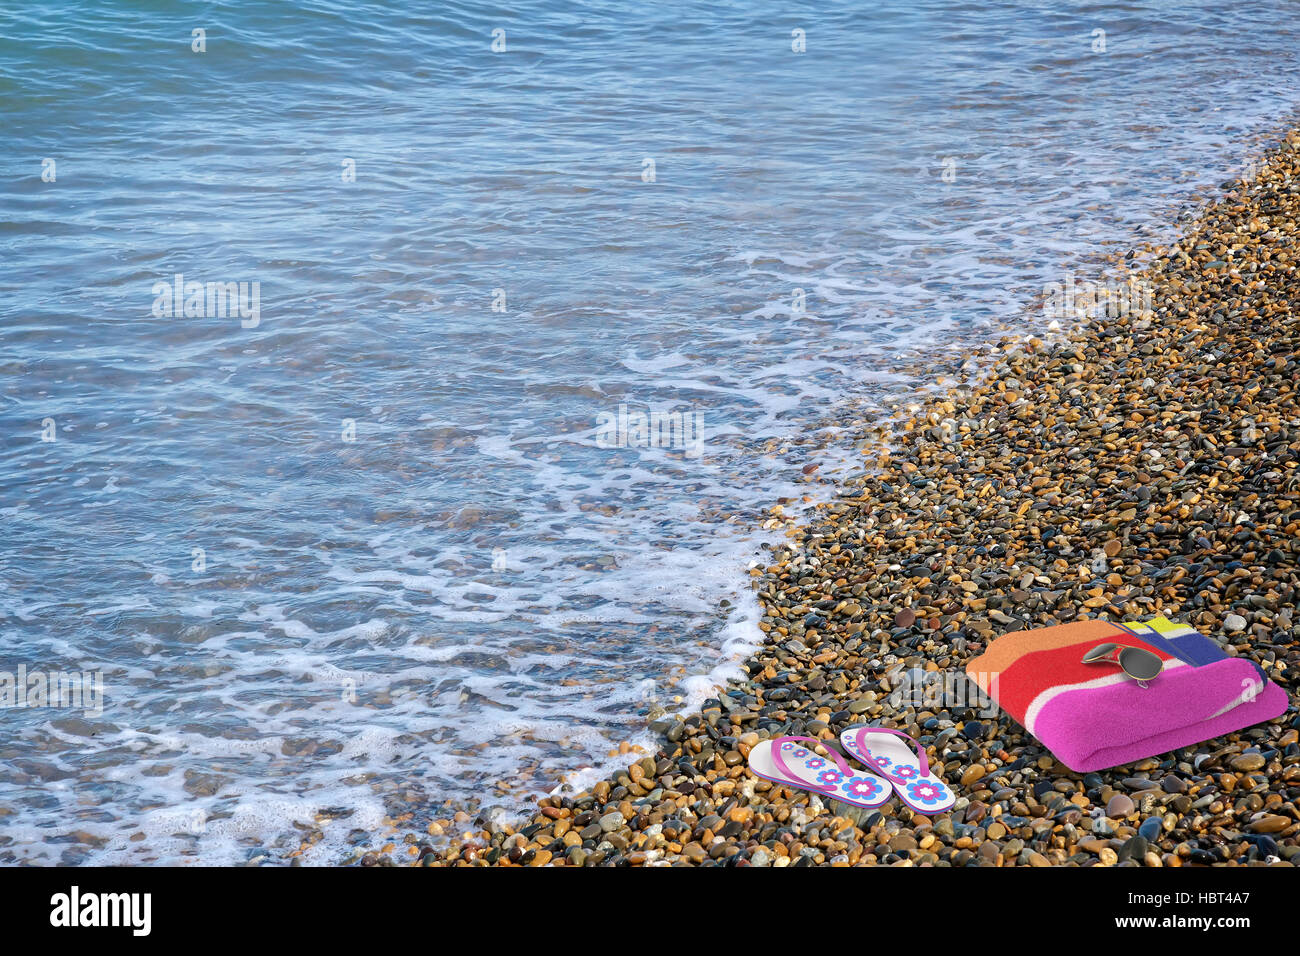 Beach shoes and a towel on the beach. - Stock Image